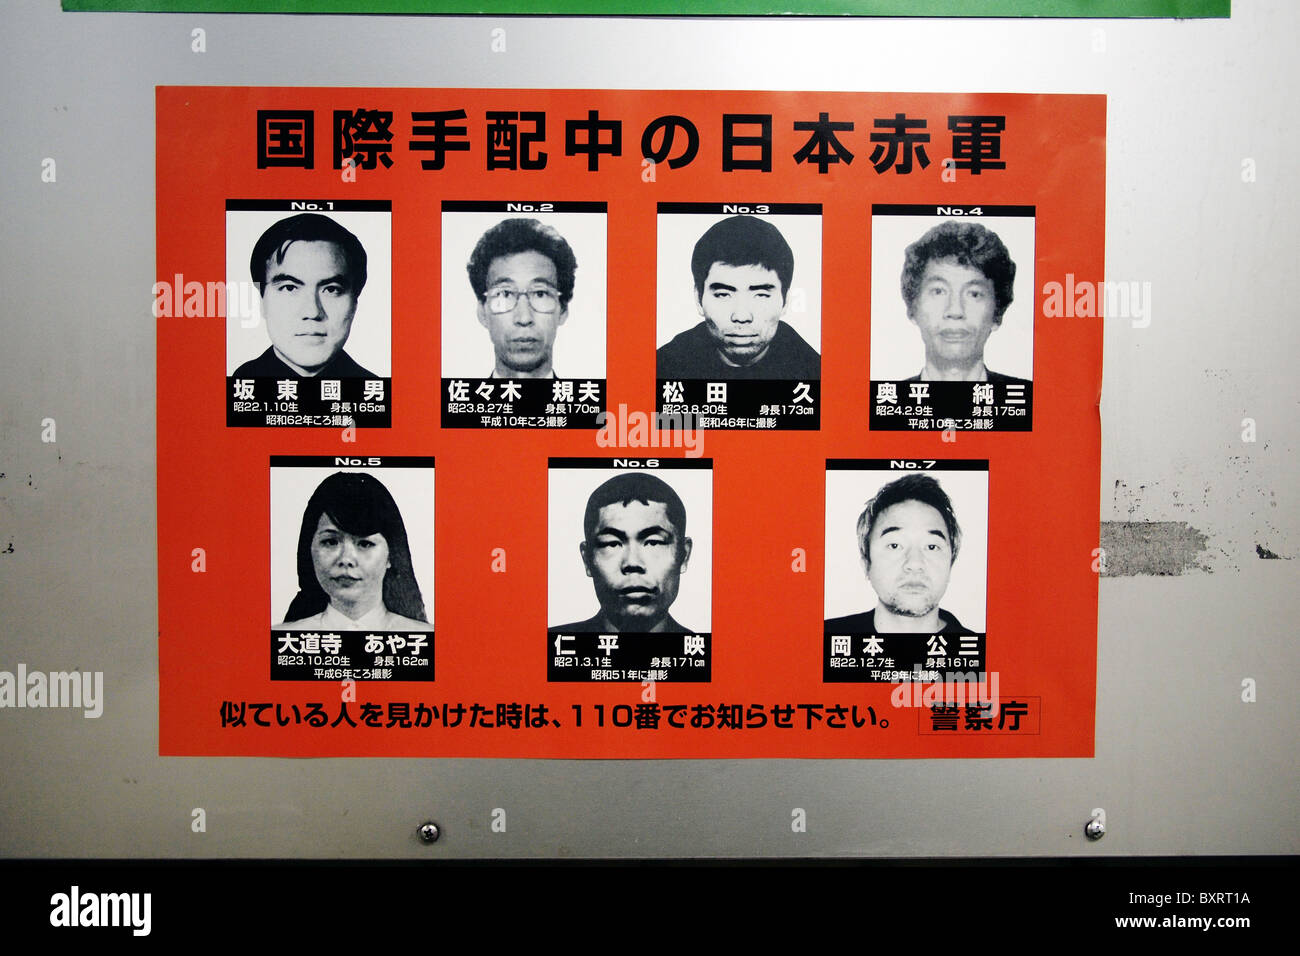 Wanted Poster With Mugshot Photos Of Criminals And Outlaws, In Tokyo Japan  Criminal Wanted Poster